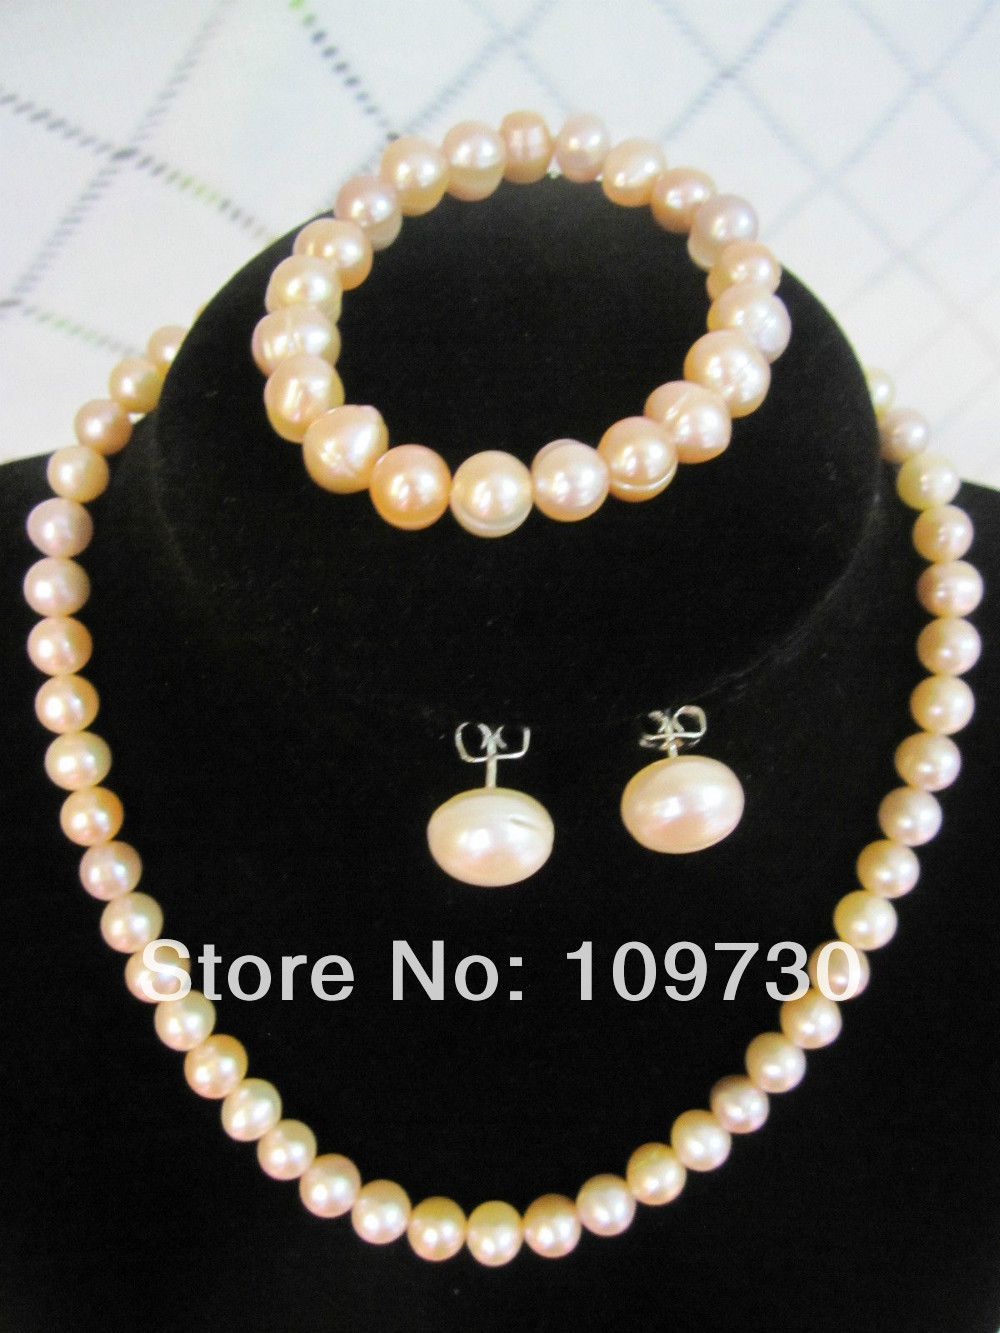 Jewelry 00586 Pink Pearl Jewelry Set Necklace+Bracelet+Earrings-100%Jewelry 00586 Pink Pearl Jewelry Set Necklace+Bracelet+Earrings-100%